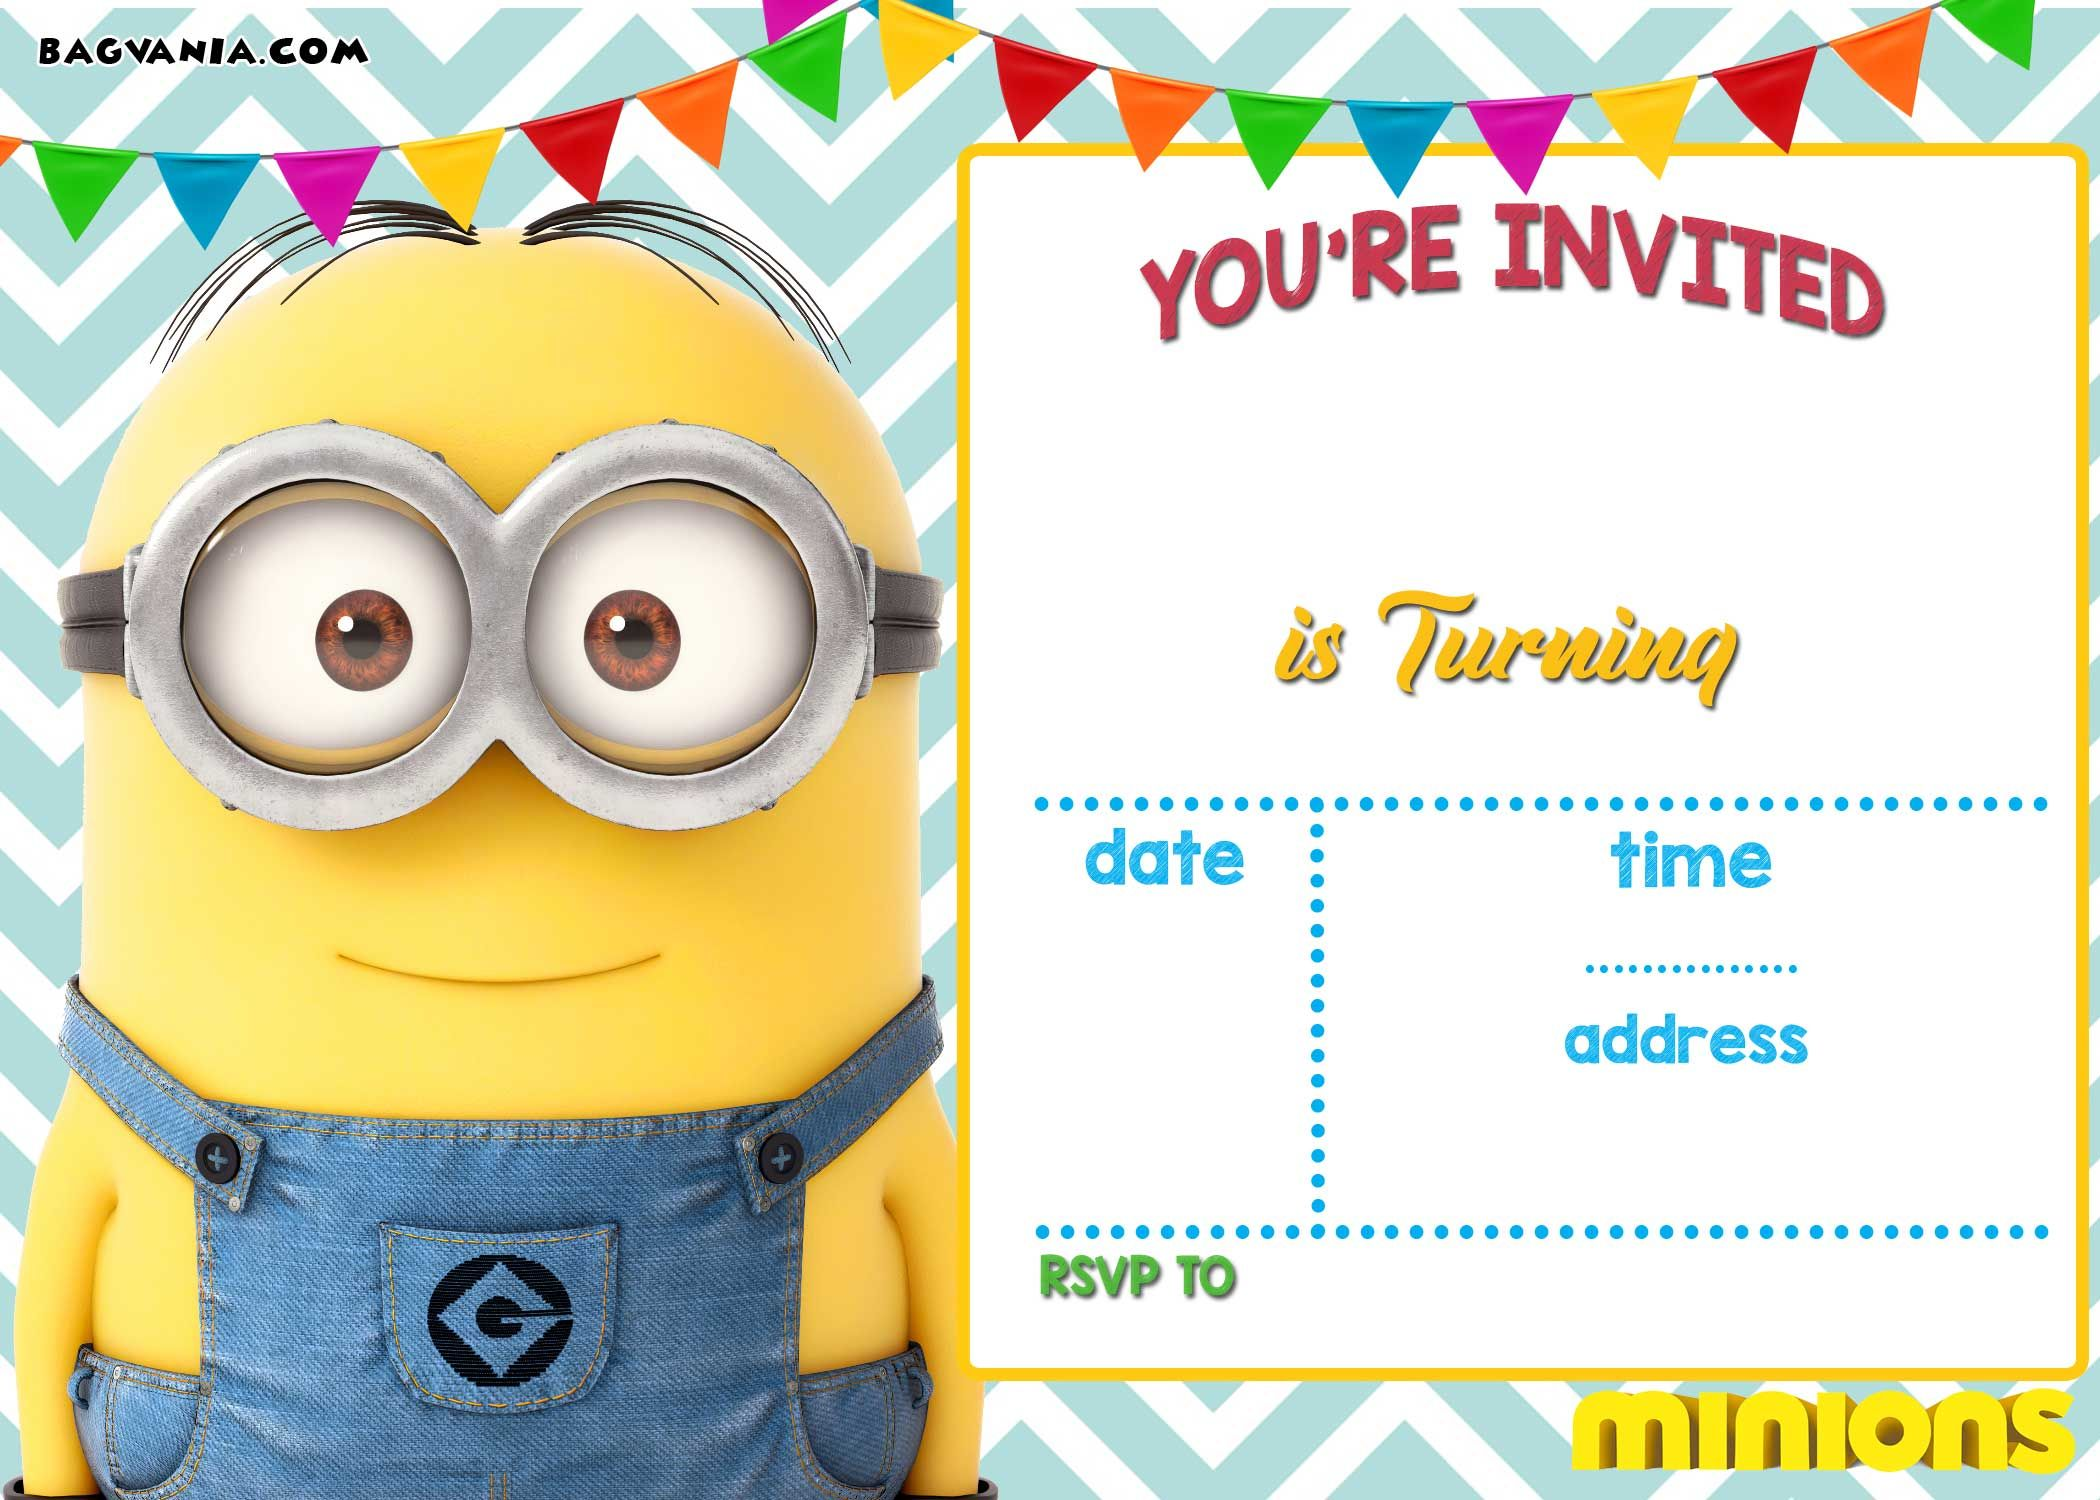 photograph relating to Minions Printable Invitations named Down load Already Free of charge Printable Minion Birthday Invitation